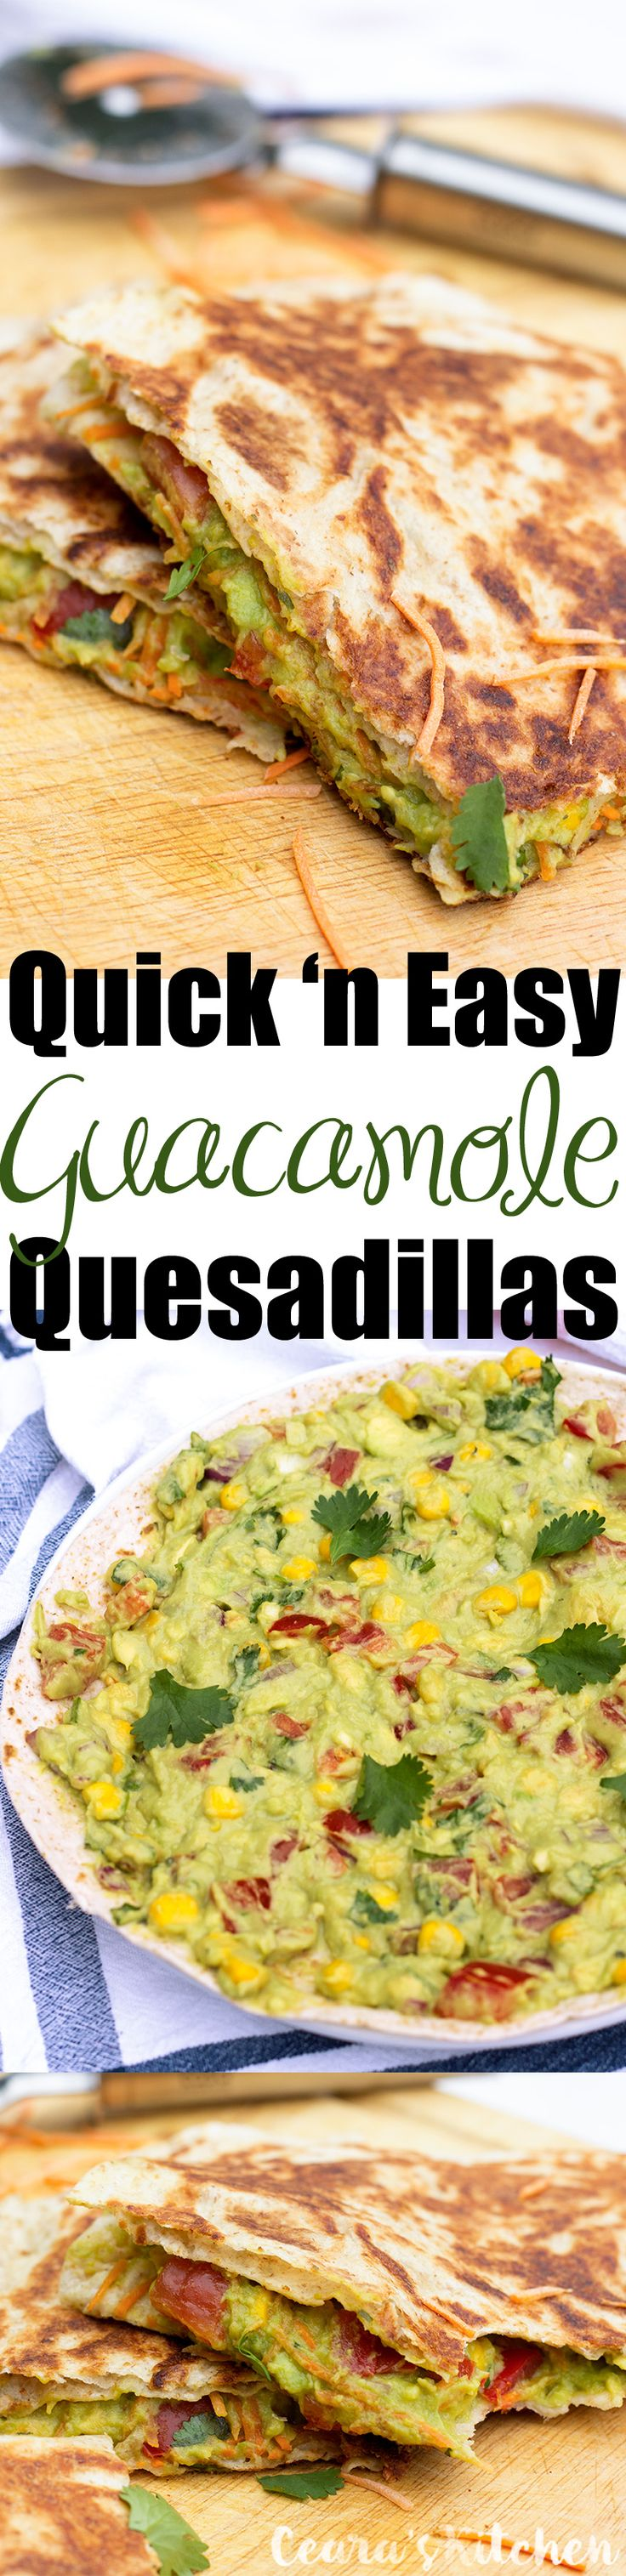 Easy Guacamole Quesadillas - the perfect #appetizer or #side ! Serve warm, straight from the pan, oozing with warm avocado-packed guacamole! #GlutenFree #Healthy #Avocado #Guacamole #Mexican #Vegan